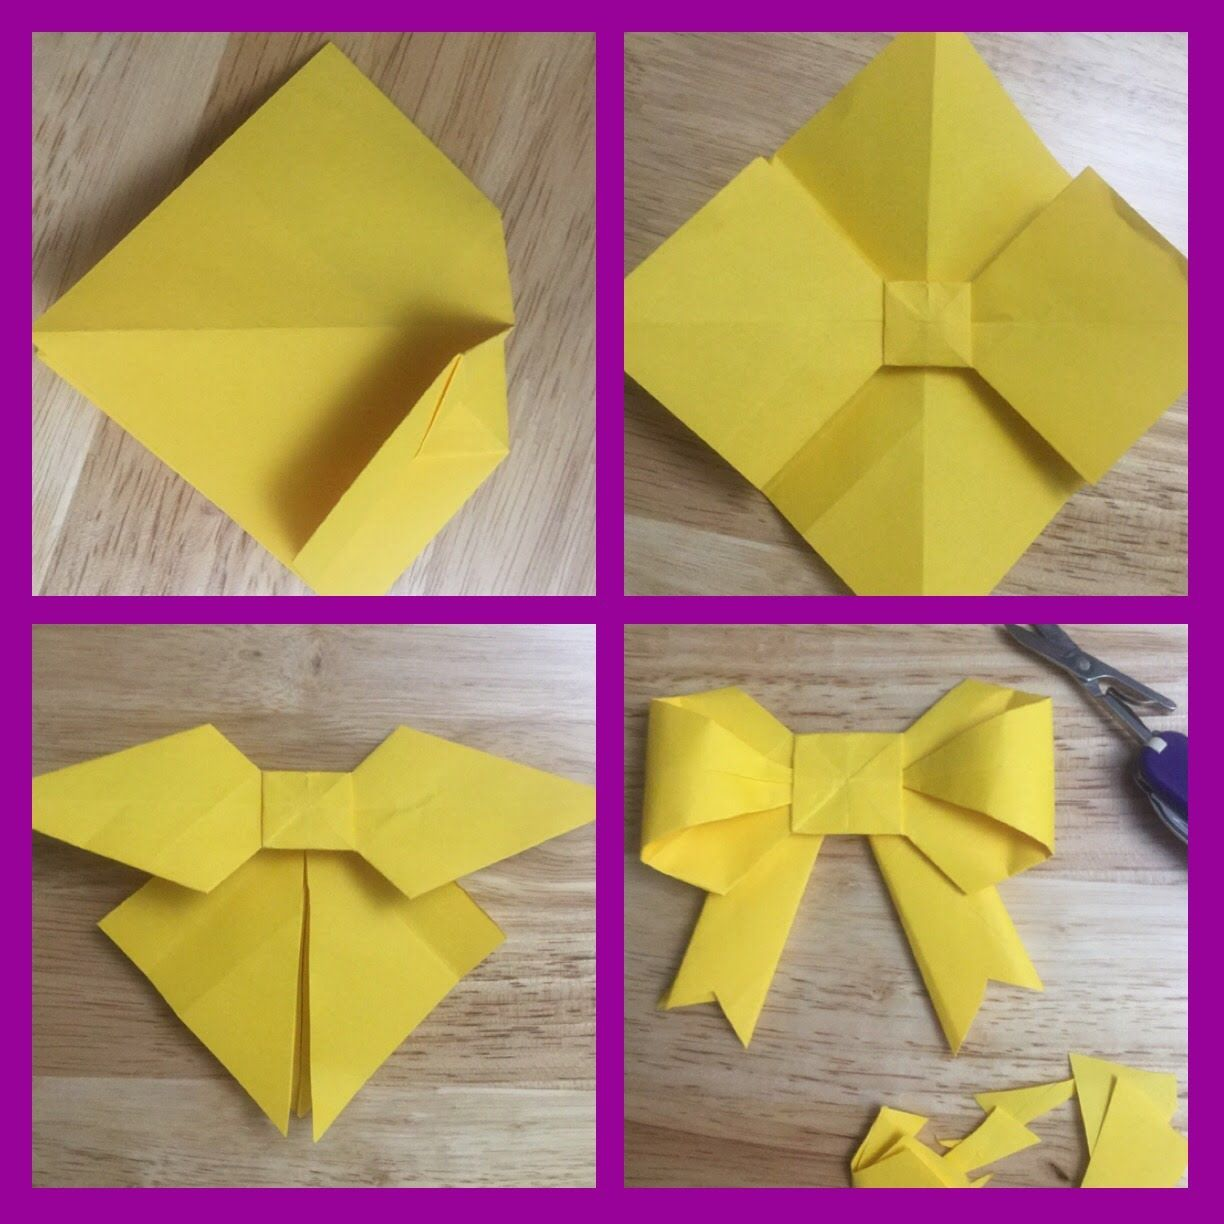 Origami Bows Based On Video By Babebama I Saw On Facebook Diy